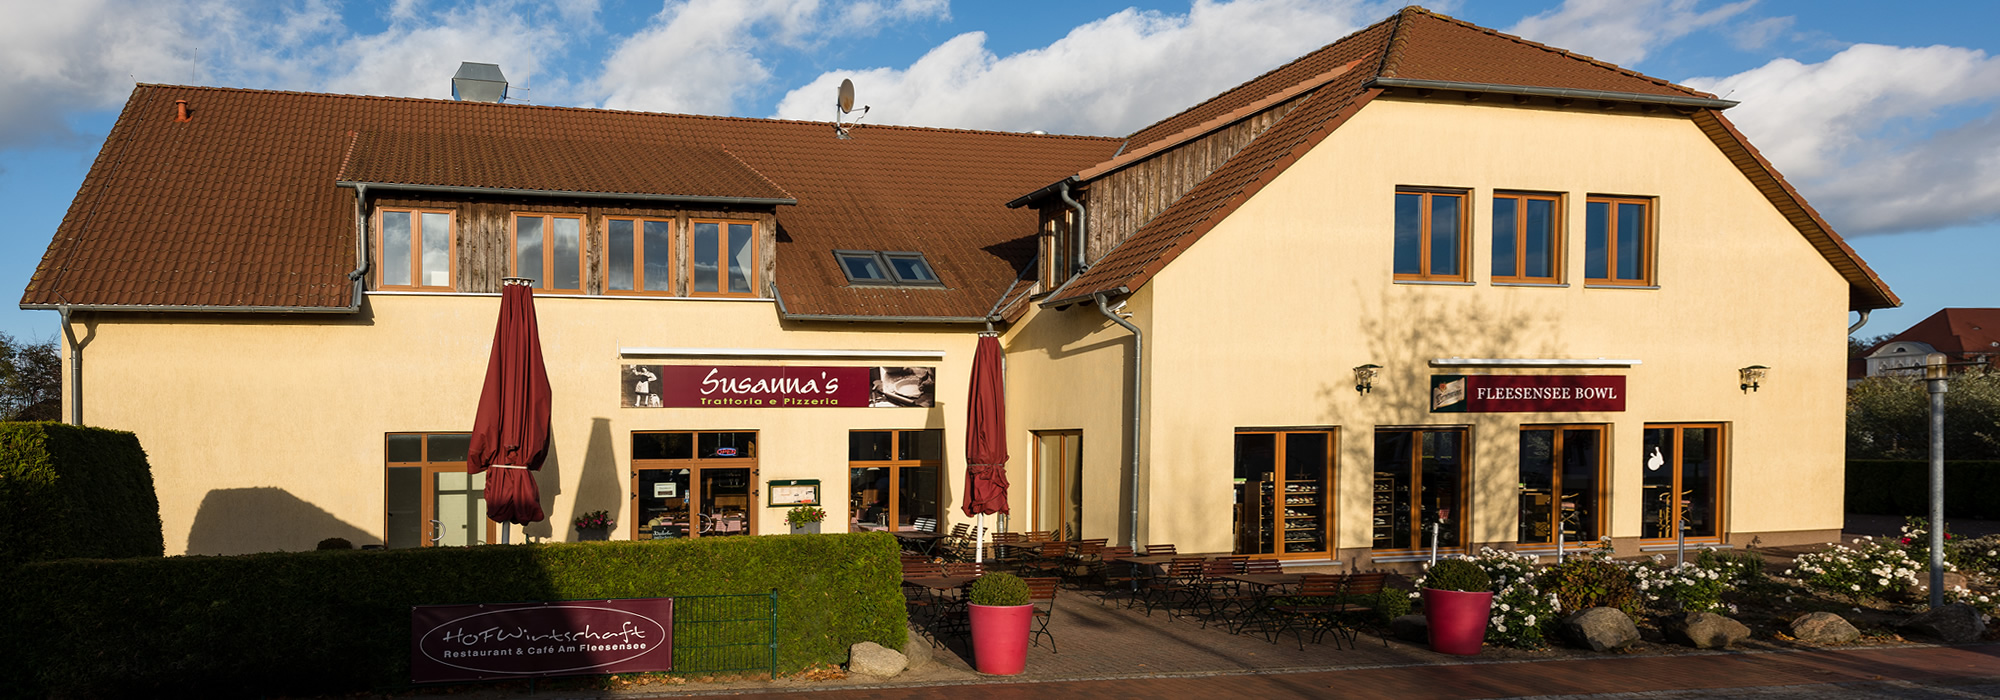 Restaurant Susannas am Fleesensee